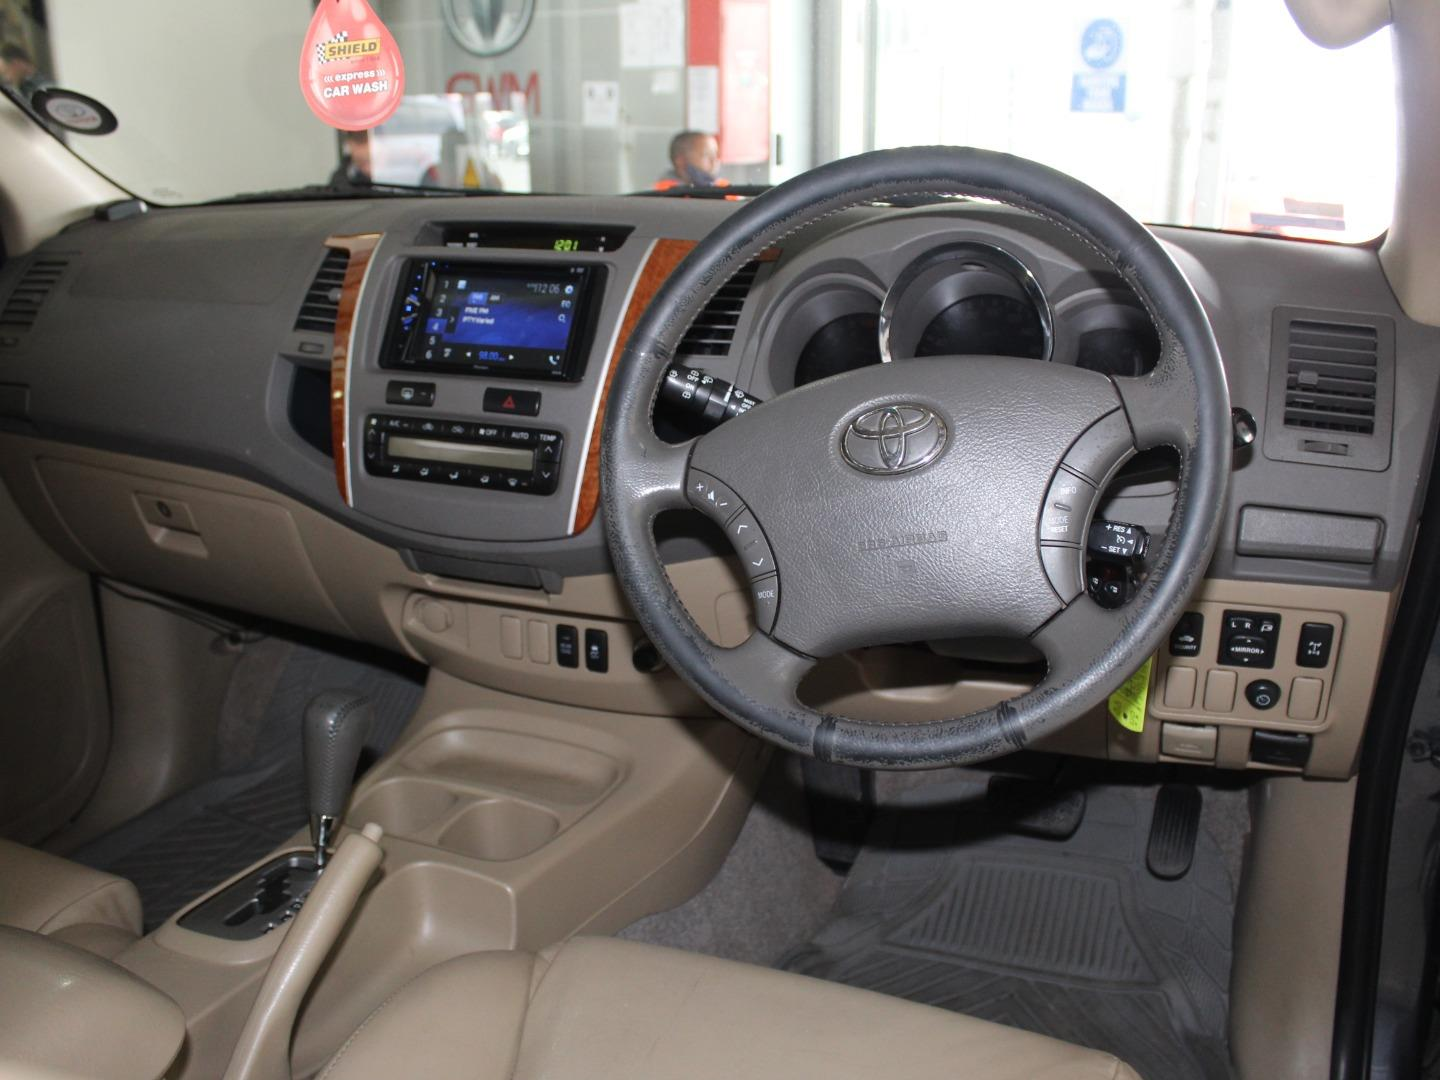 2011 Toyota Fortuner 3.0D-4D Auto- Picture 5